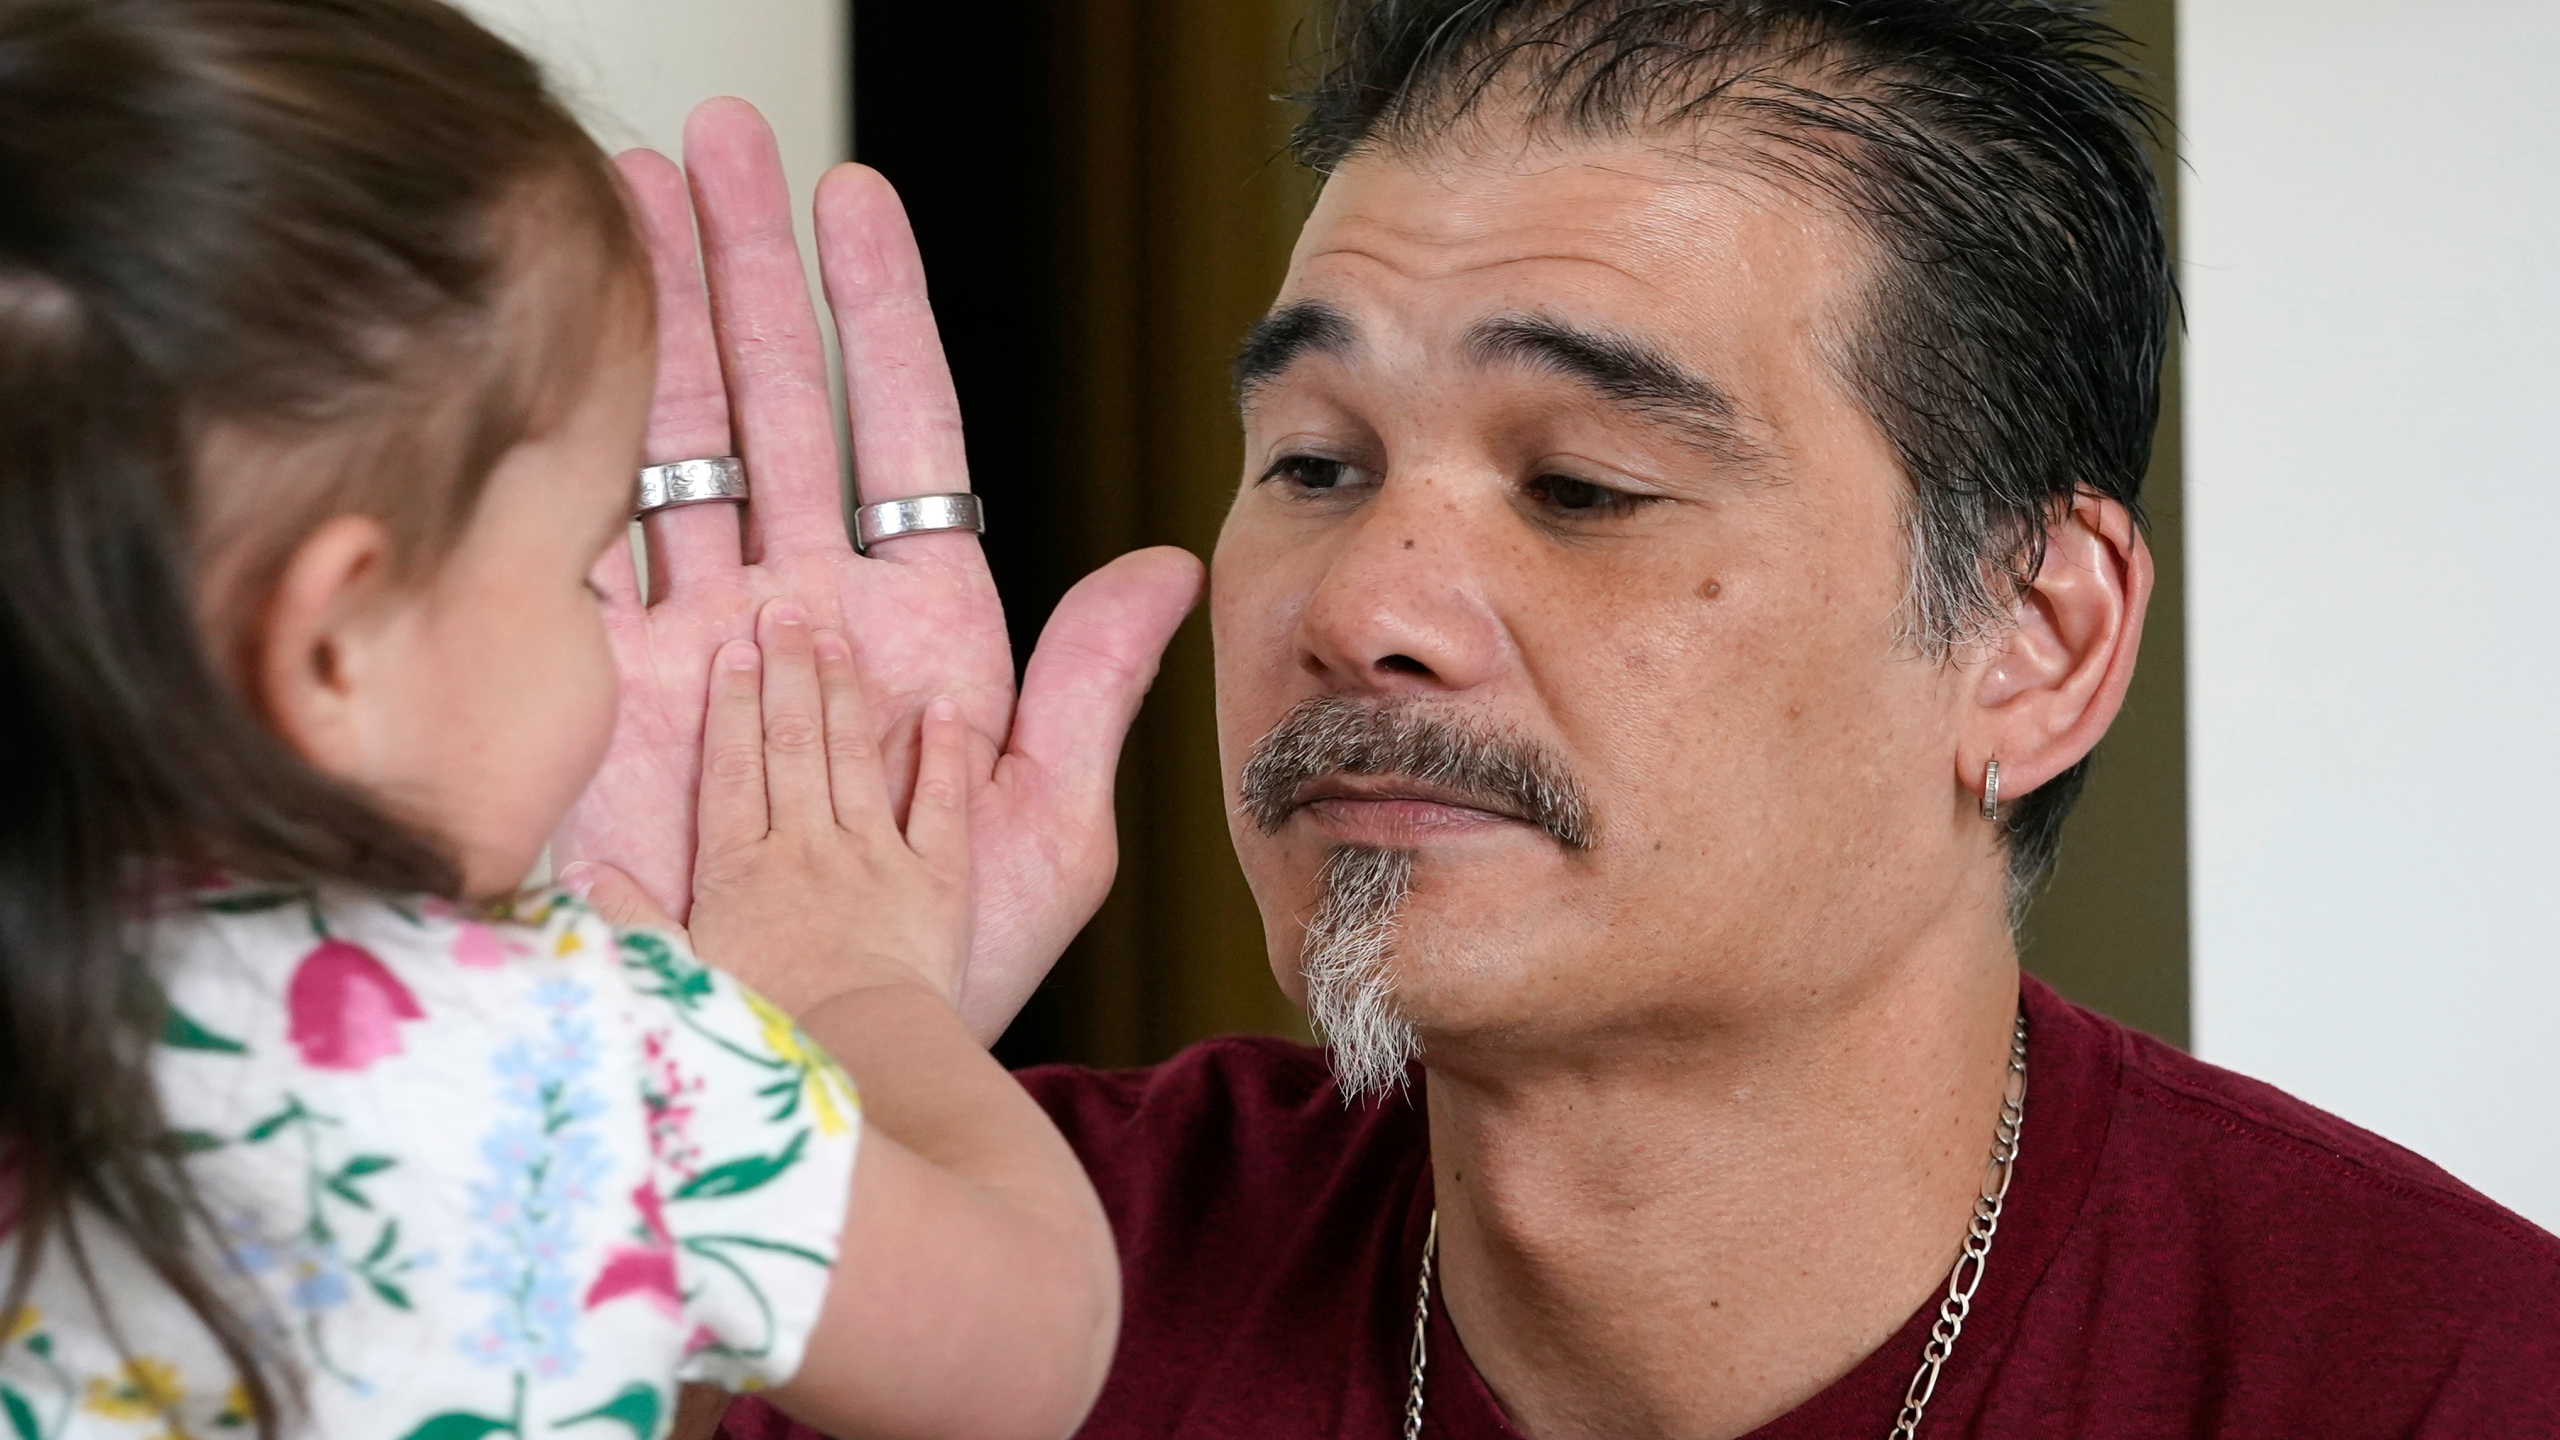 Leroy Pascubillo touches hands with his daughter, who was born addicted to heroin and placed with a foster family at birth, May 10, 2021, in Seattle. Pascubillo, who had used drugs for the better part of four decades, was in a court-ordered in-patient drug rehab program when the pandemic first hit. (AP Photo/Elaine Thompson)